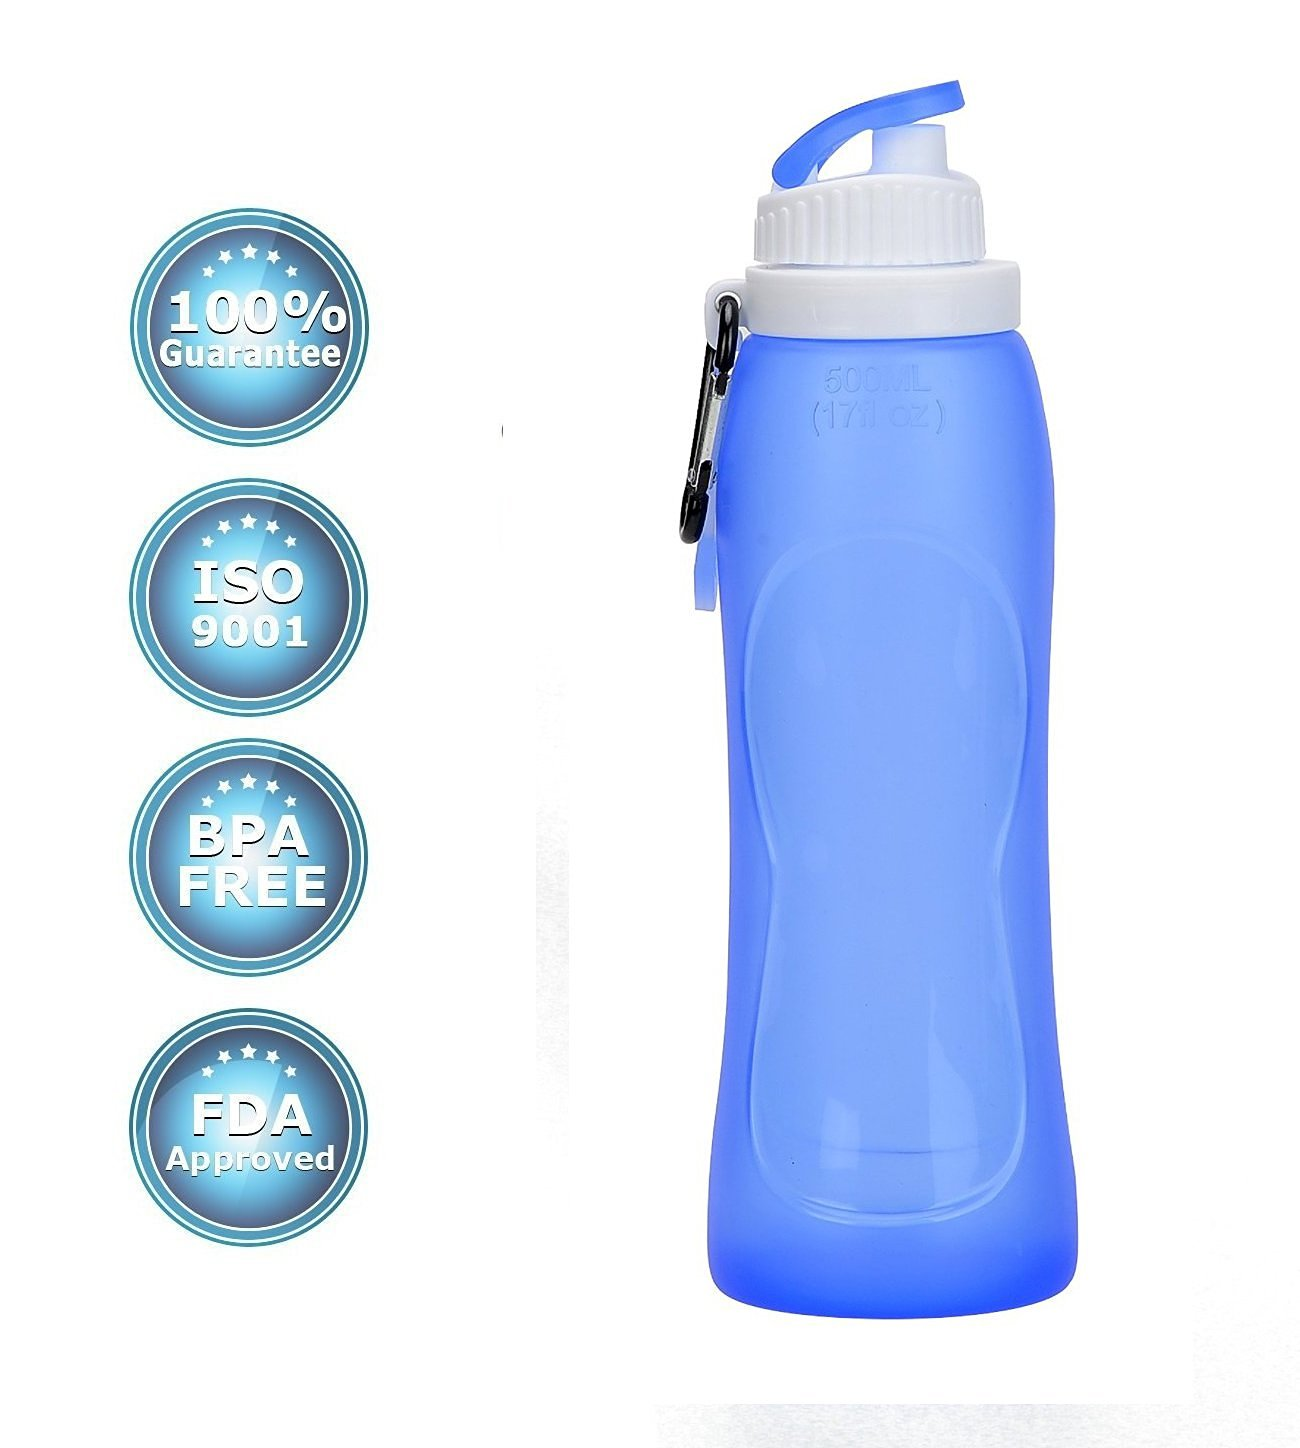 Spider-BX Portable Silicon Collapsible Water Bottle,BPA Free, (TM) Foldable Filter Sports Hydrated Cup -For Cycling,Camping,Hiking,Travel,Durable,Reusable with Leak-proof Lid-17 Oz,